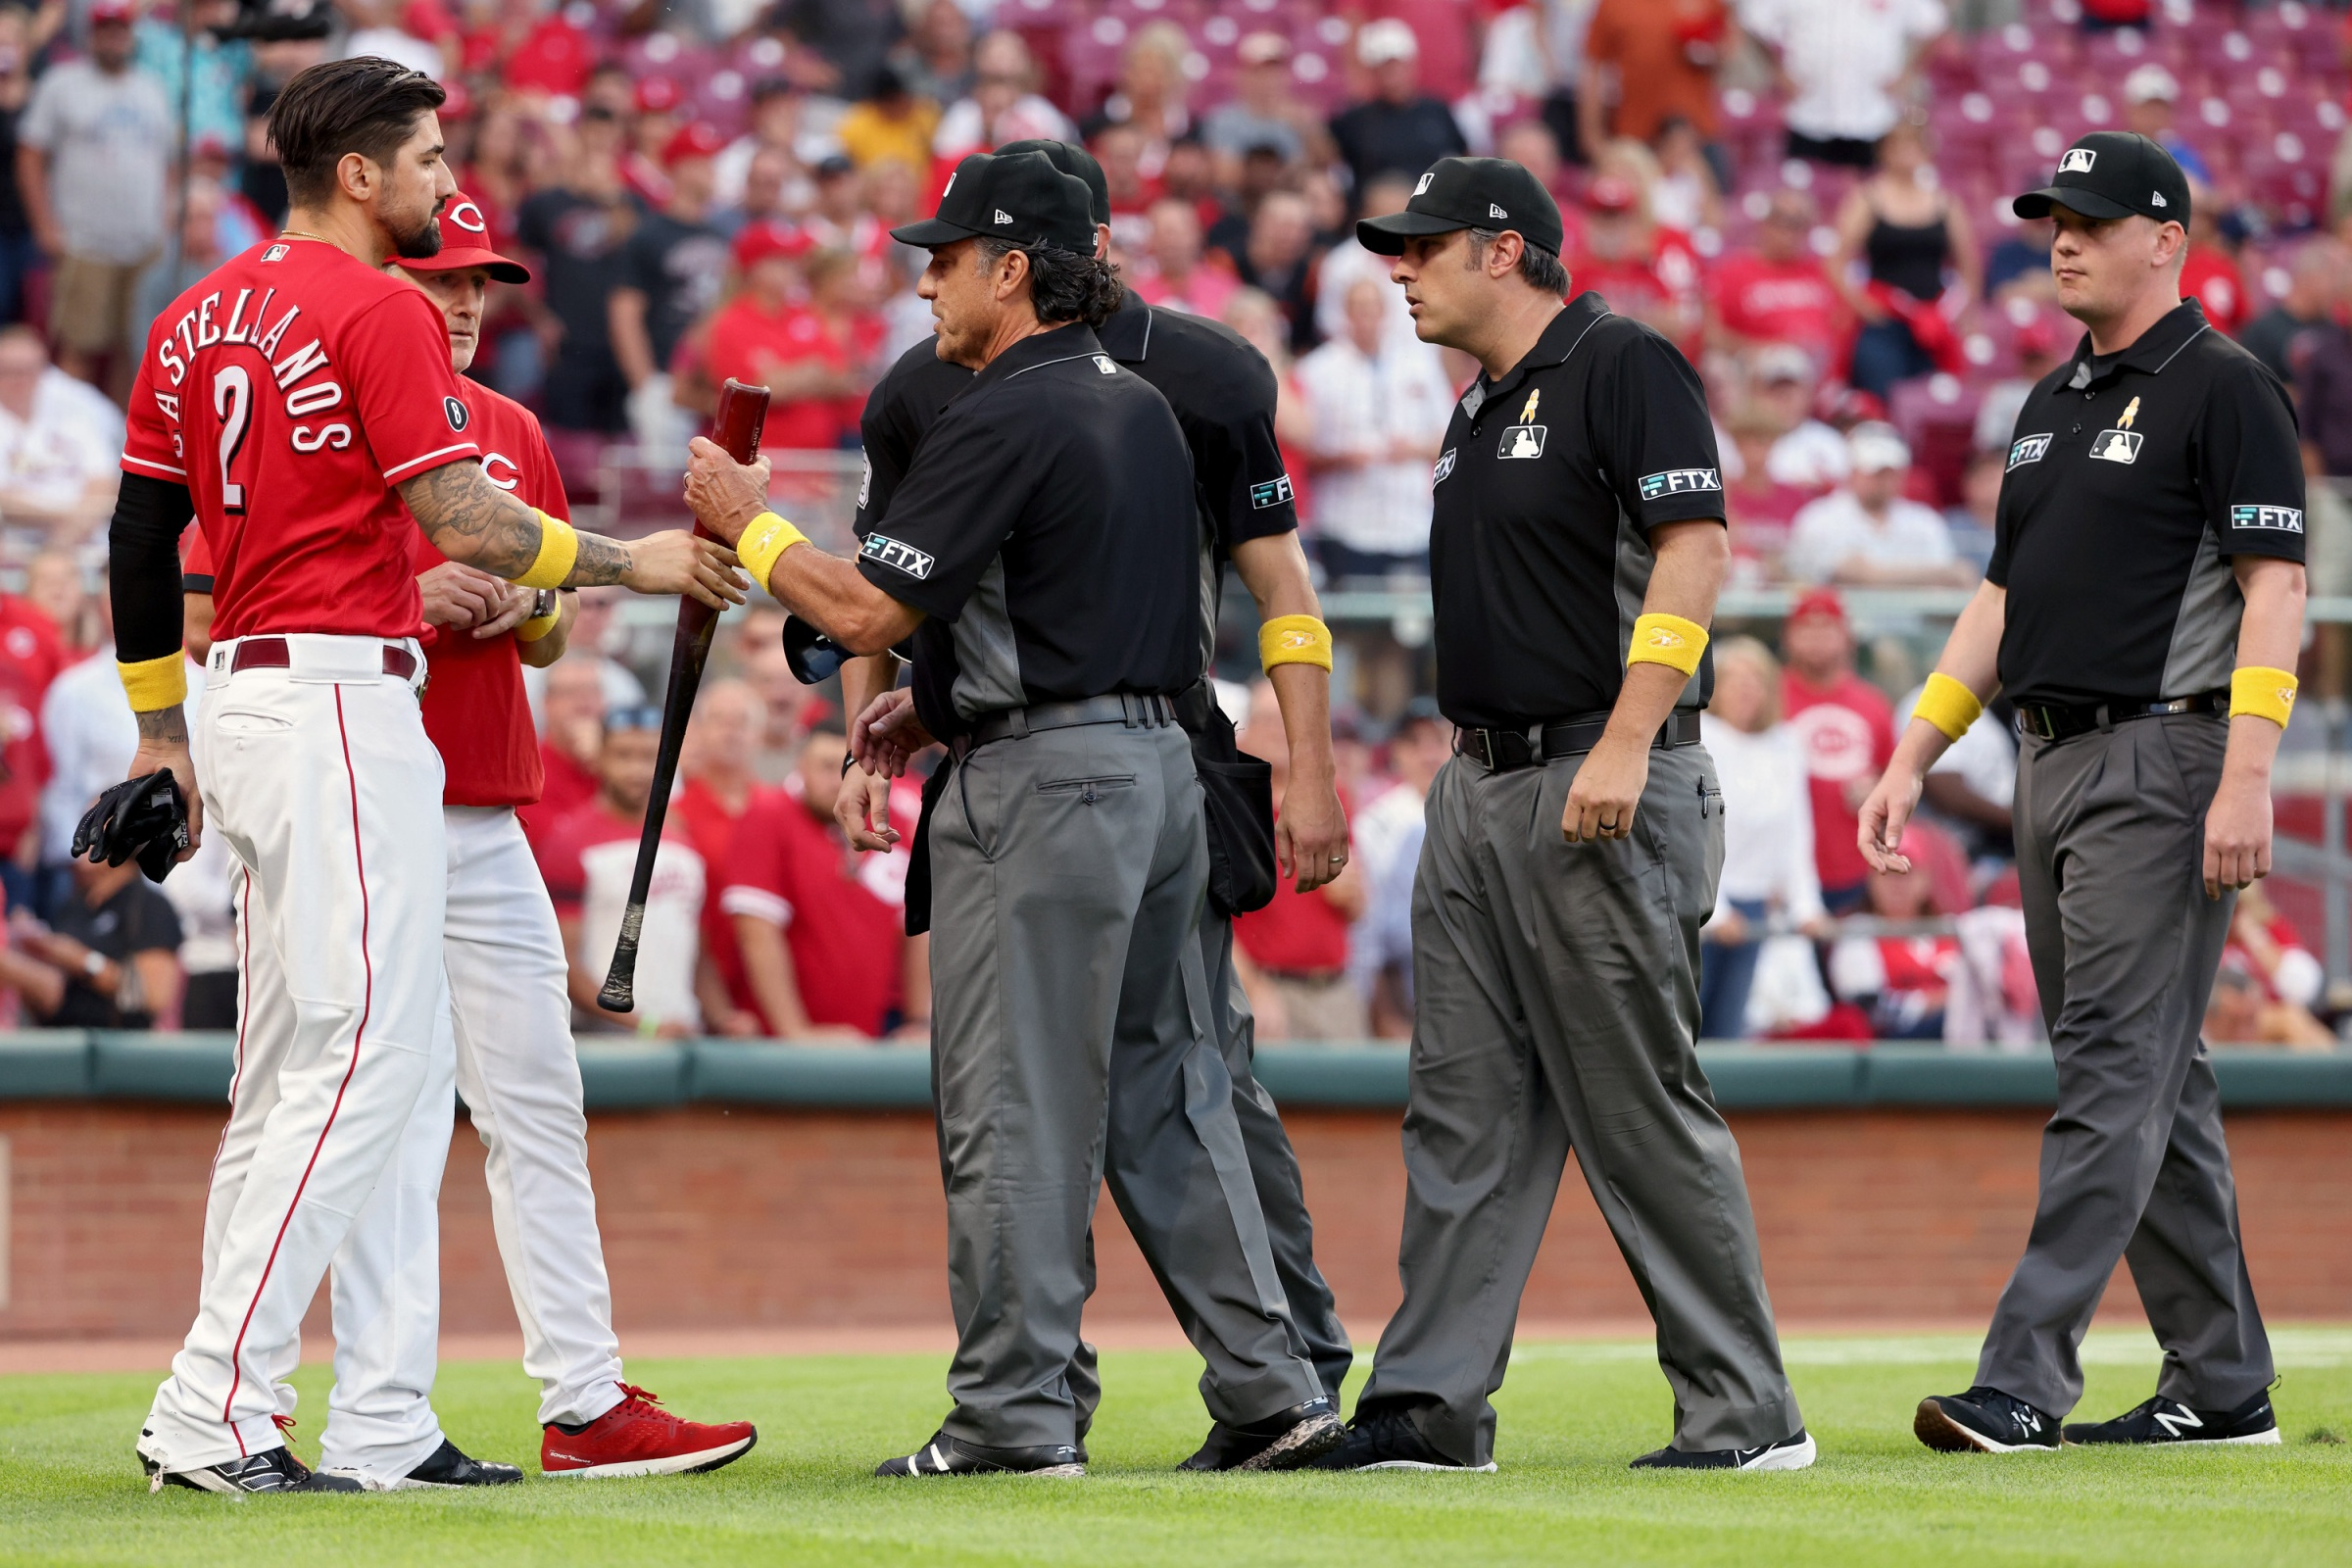 Umpires check the bat of Nick Castellanos after he destroys the St.Louis Cardinals.